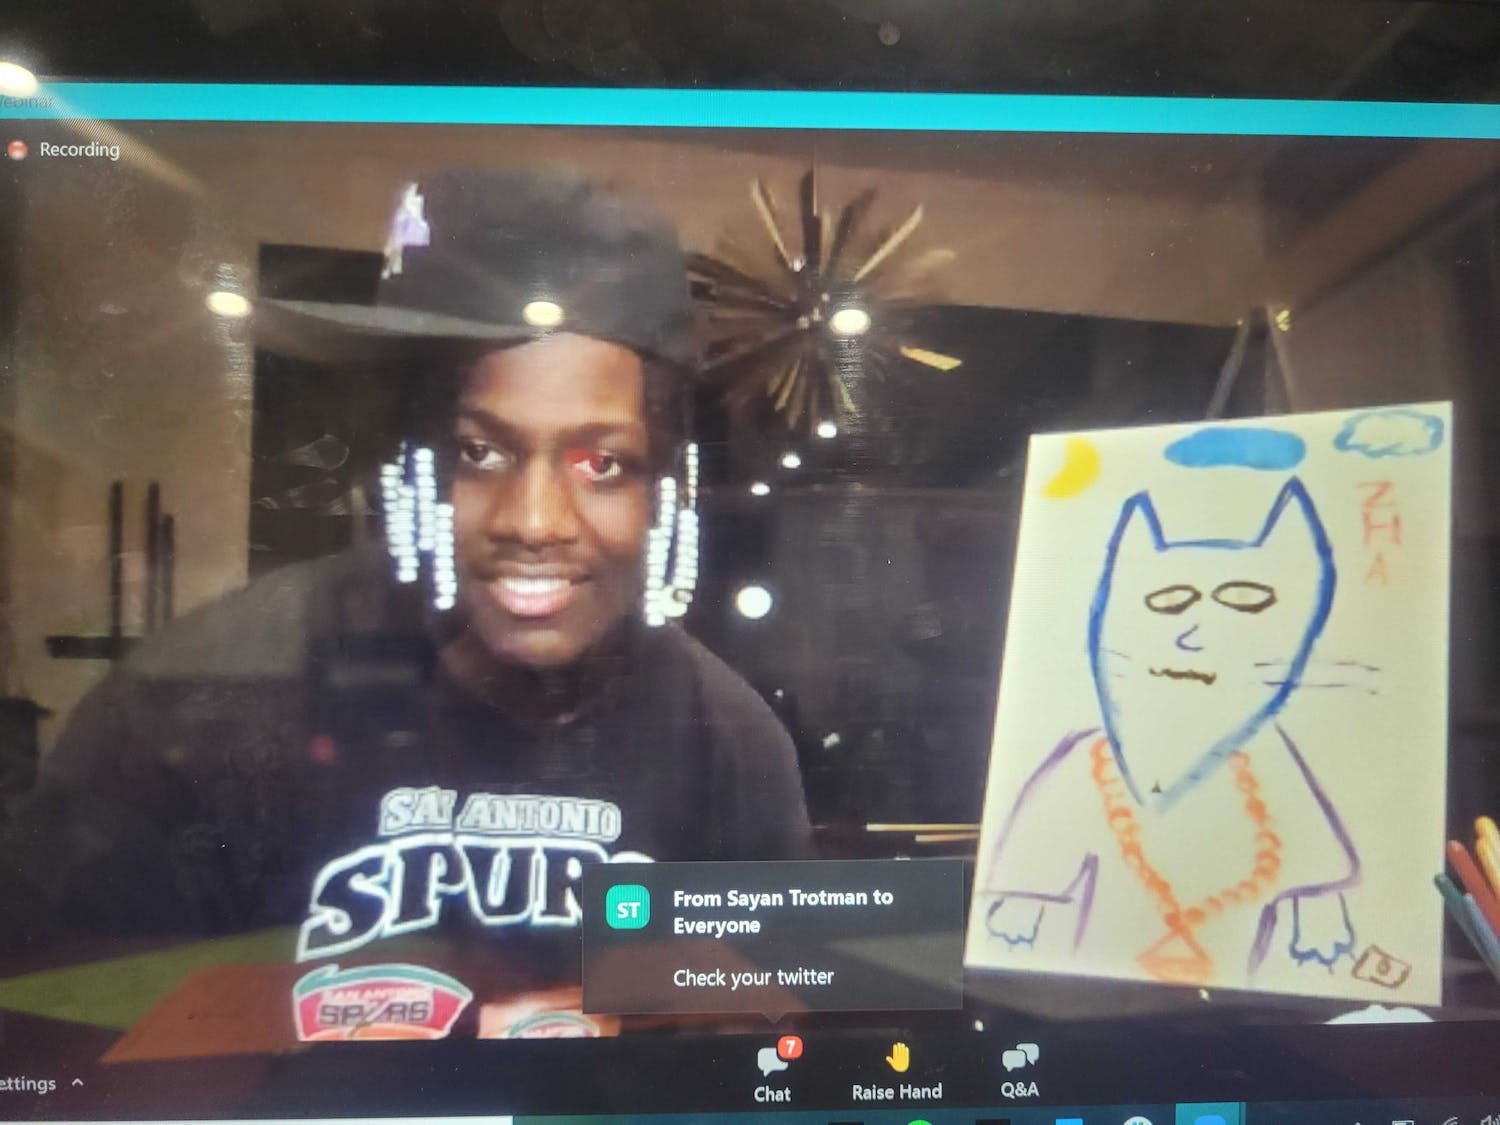 The SA's paint night featured special guest Lil Yachty, who critiqued students' art, answered questions and spurred heated debates over Zoom on Saturday.